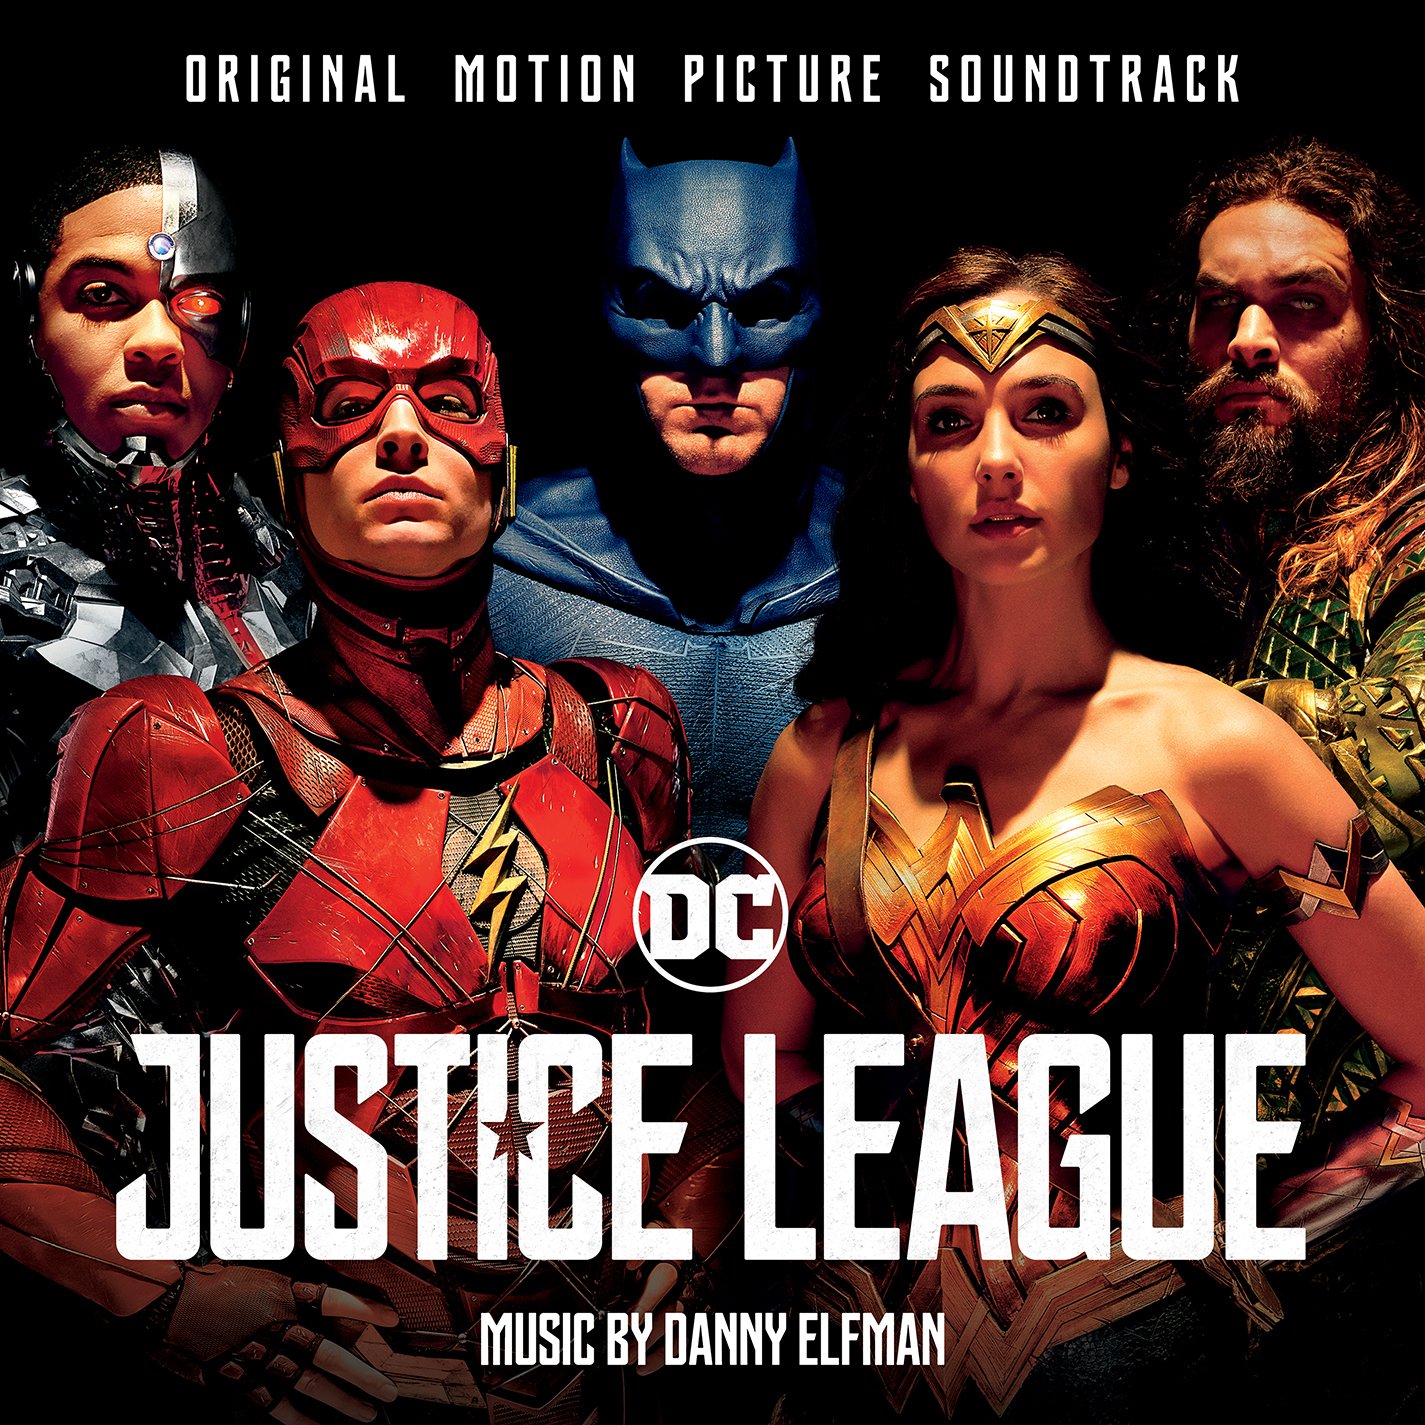 Justice League Soundtrack Available November 10 | Business Wire